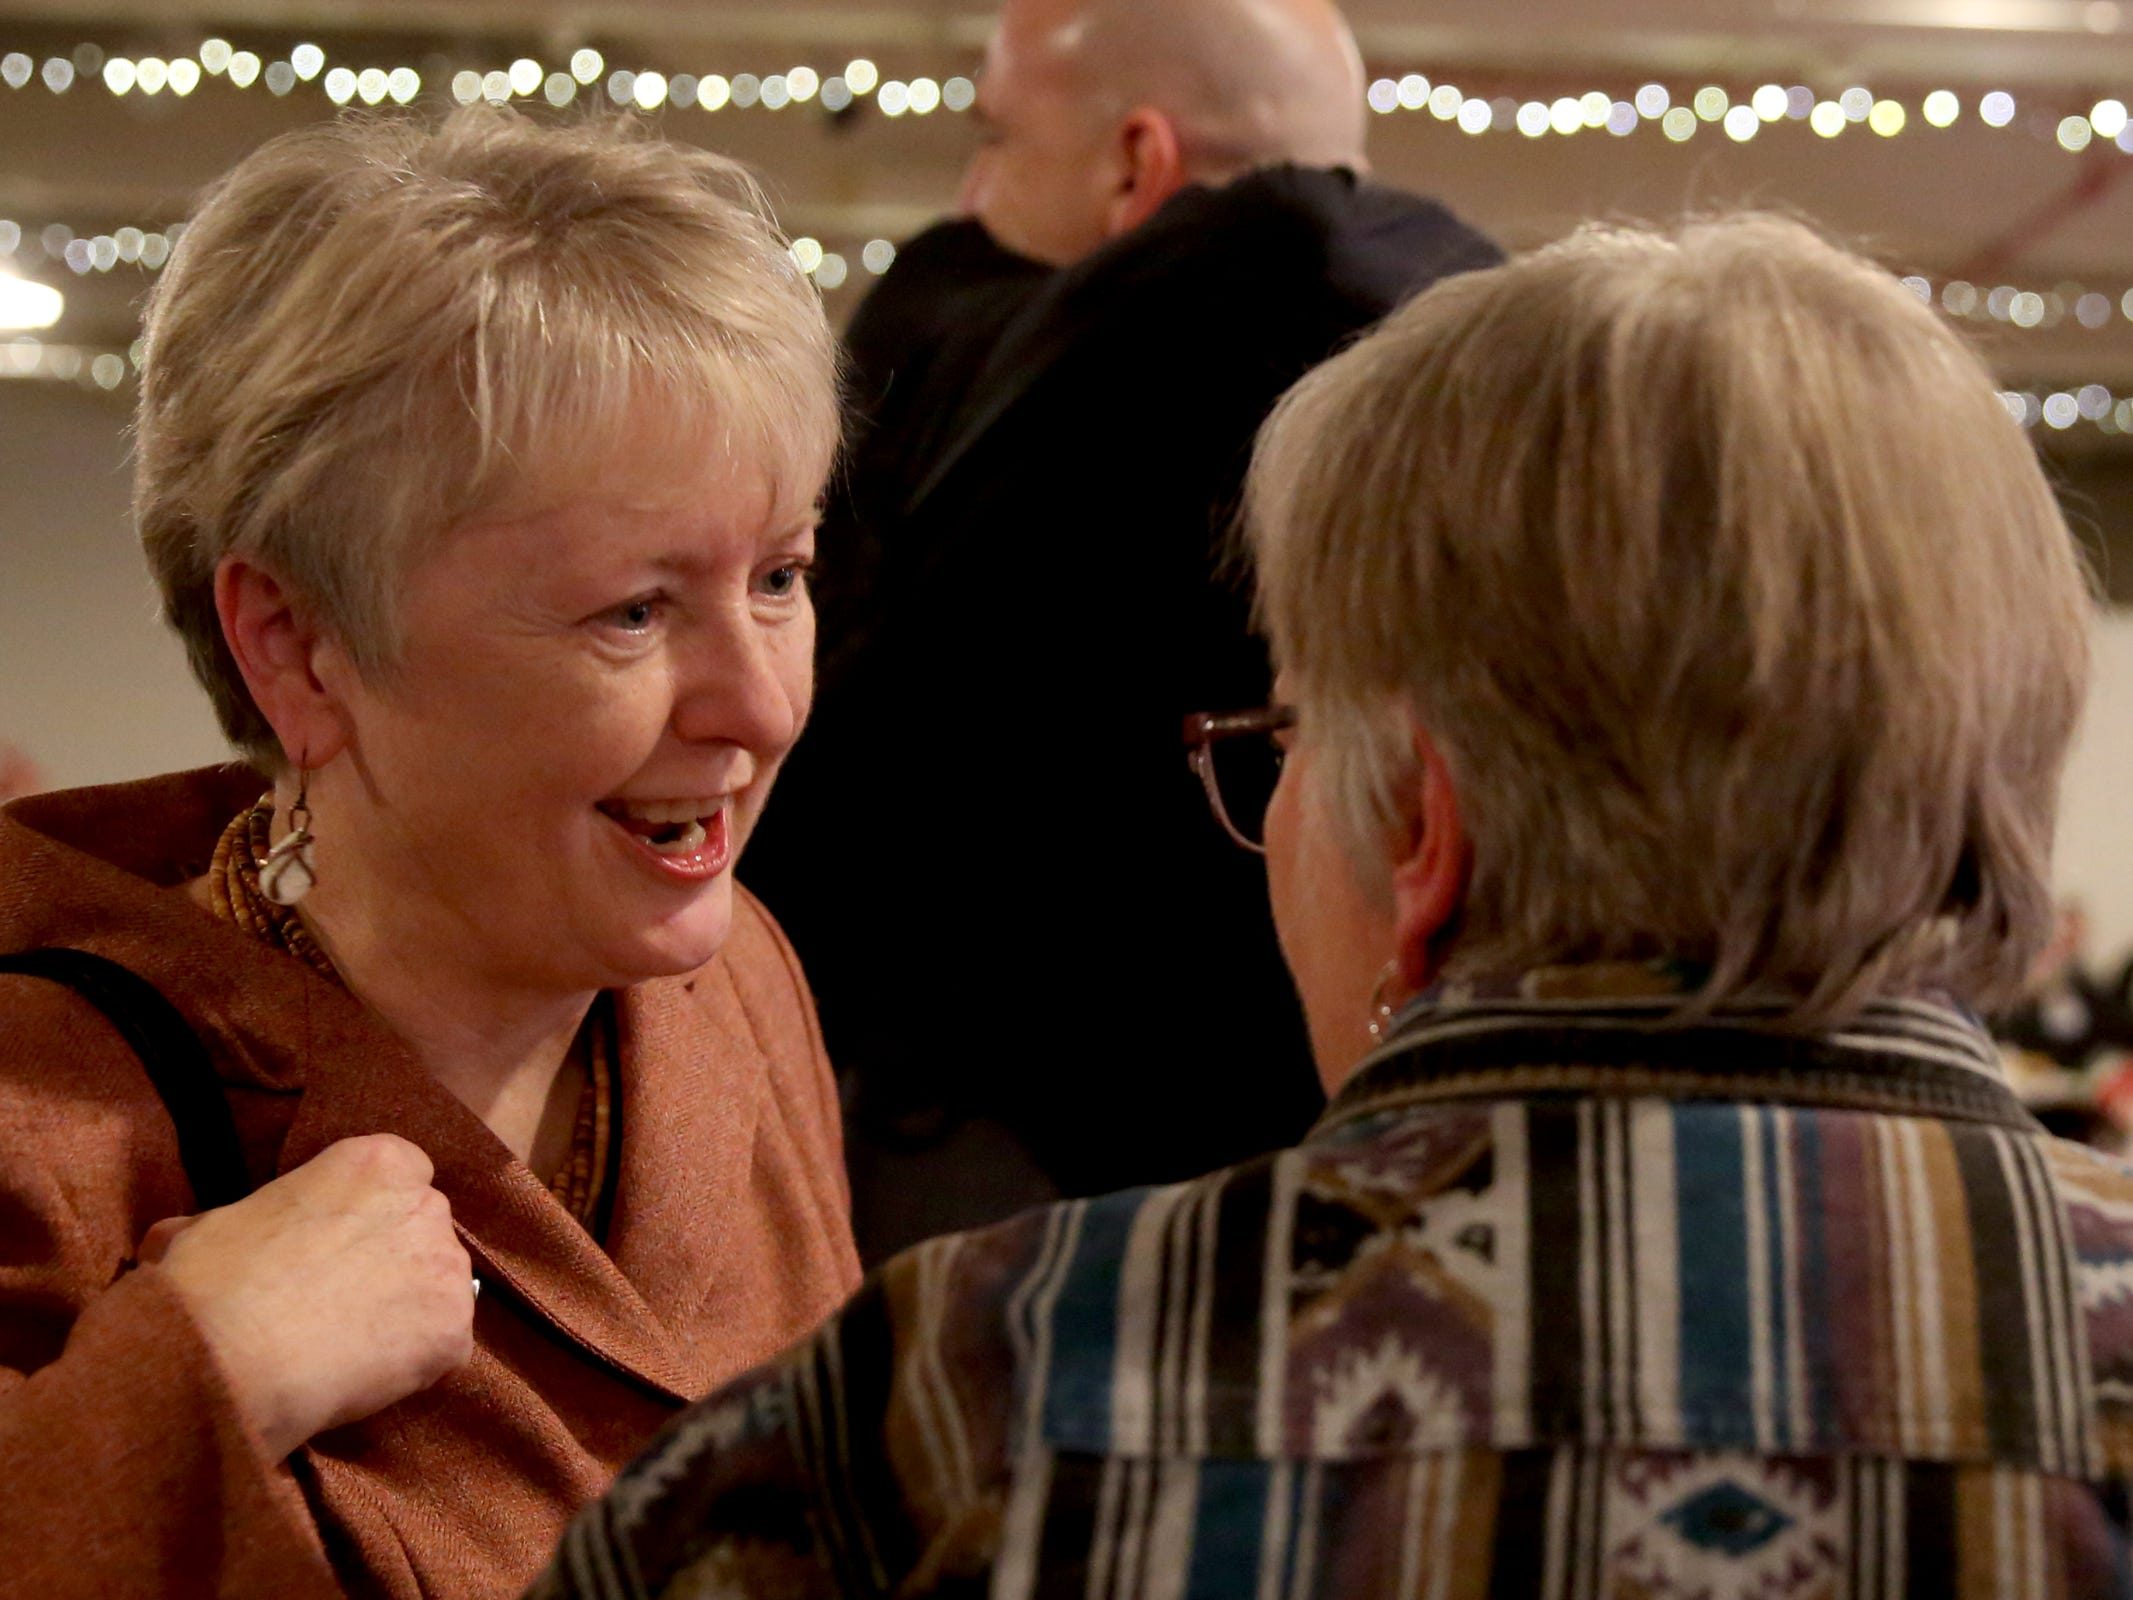 Deb Patterson, left, a candidate for Senate District 10, speaks with HariGun Khalsa, of Salem, during an election night party hosted by Marion County Democrats and Polk County Democrats at the Willamette Heritage Center in Salem on Tuesday, Nov. 6, 2018.